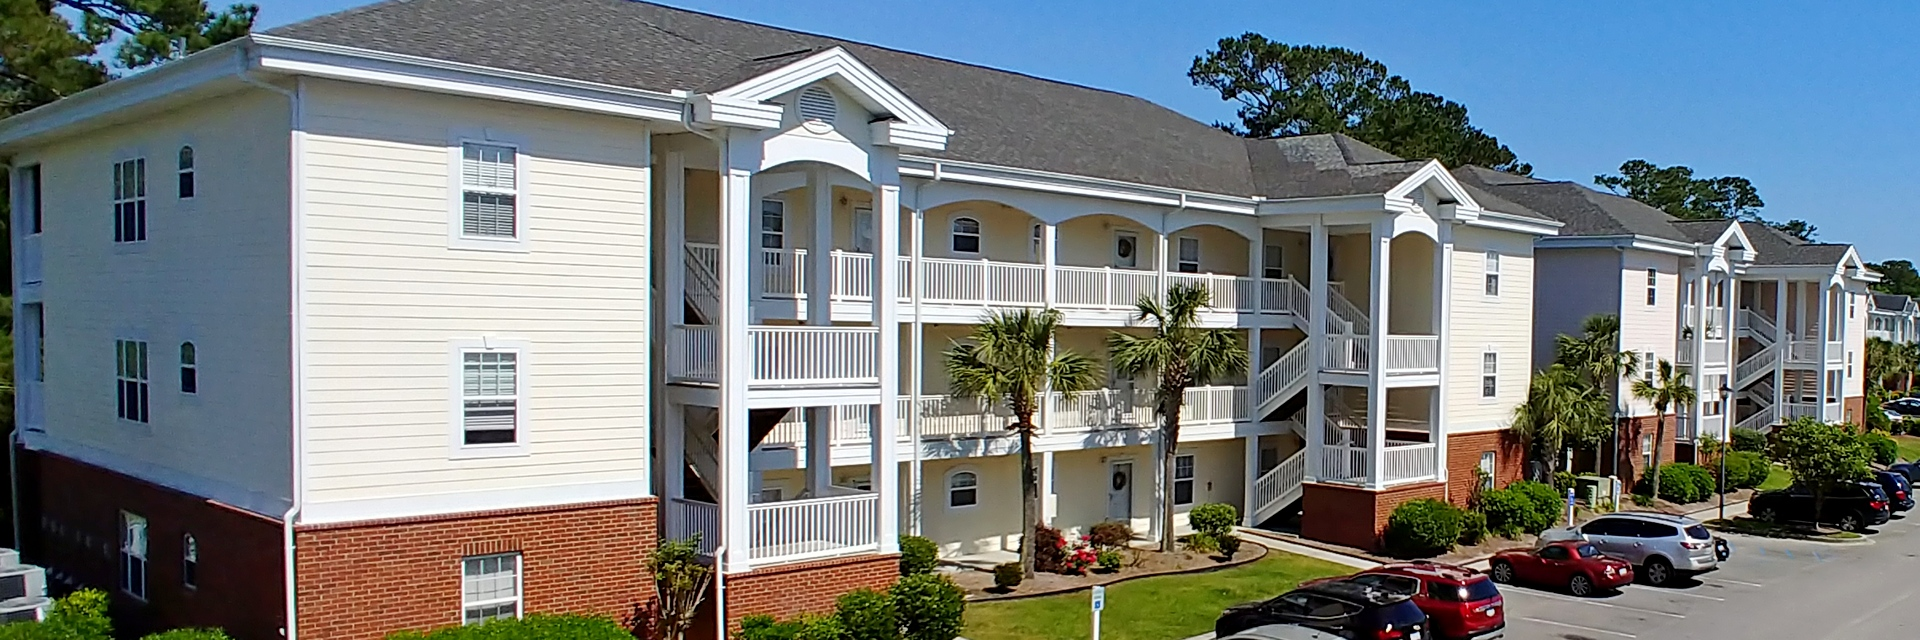 Cypress Gardens Condos in Little River SC